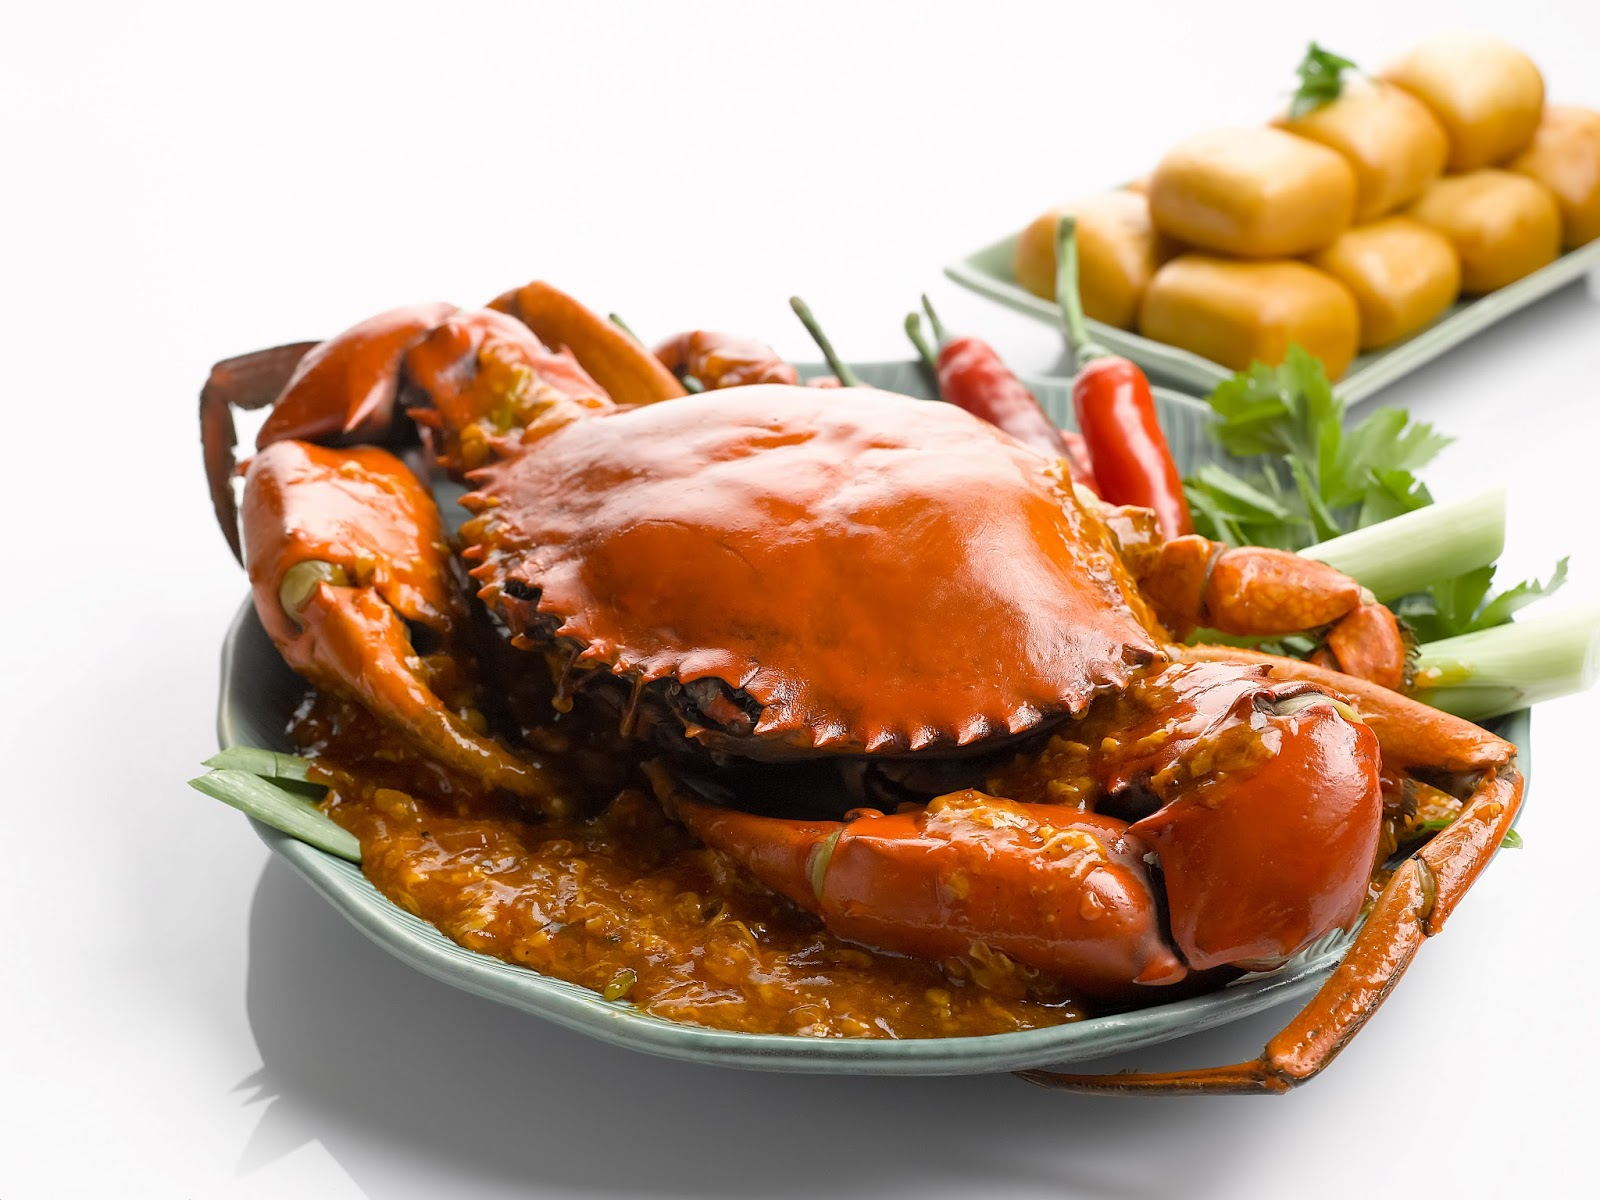 Parkroyal S Crab Feast Is Back Feast On As Many Crabs As